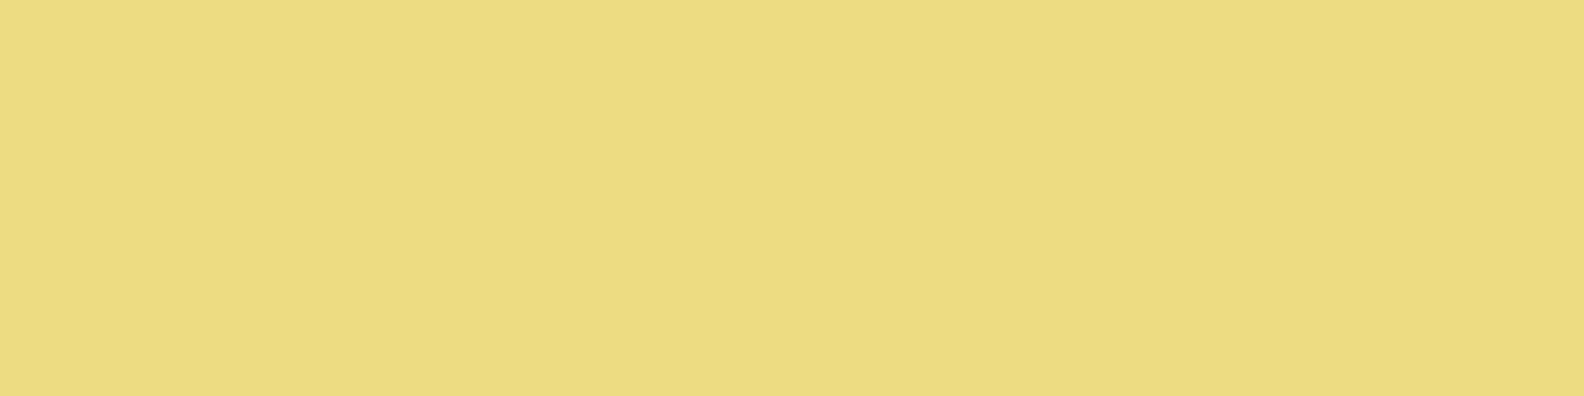 1584x396 Flax Solid Color Background